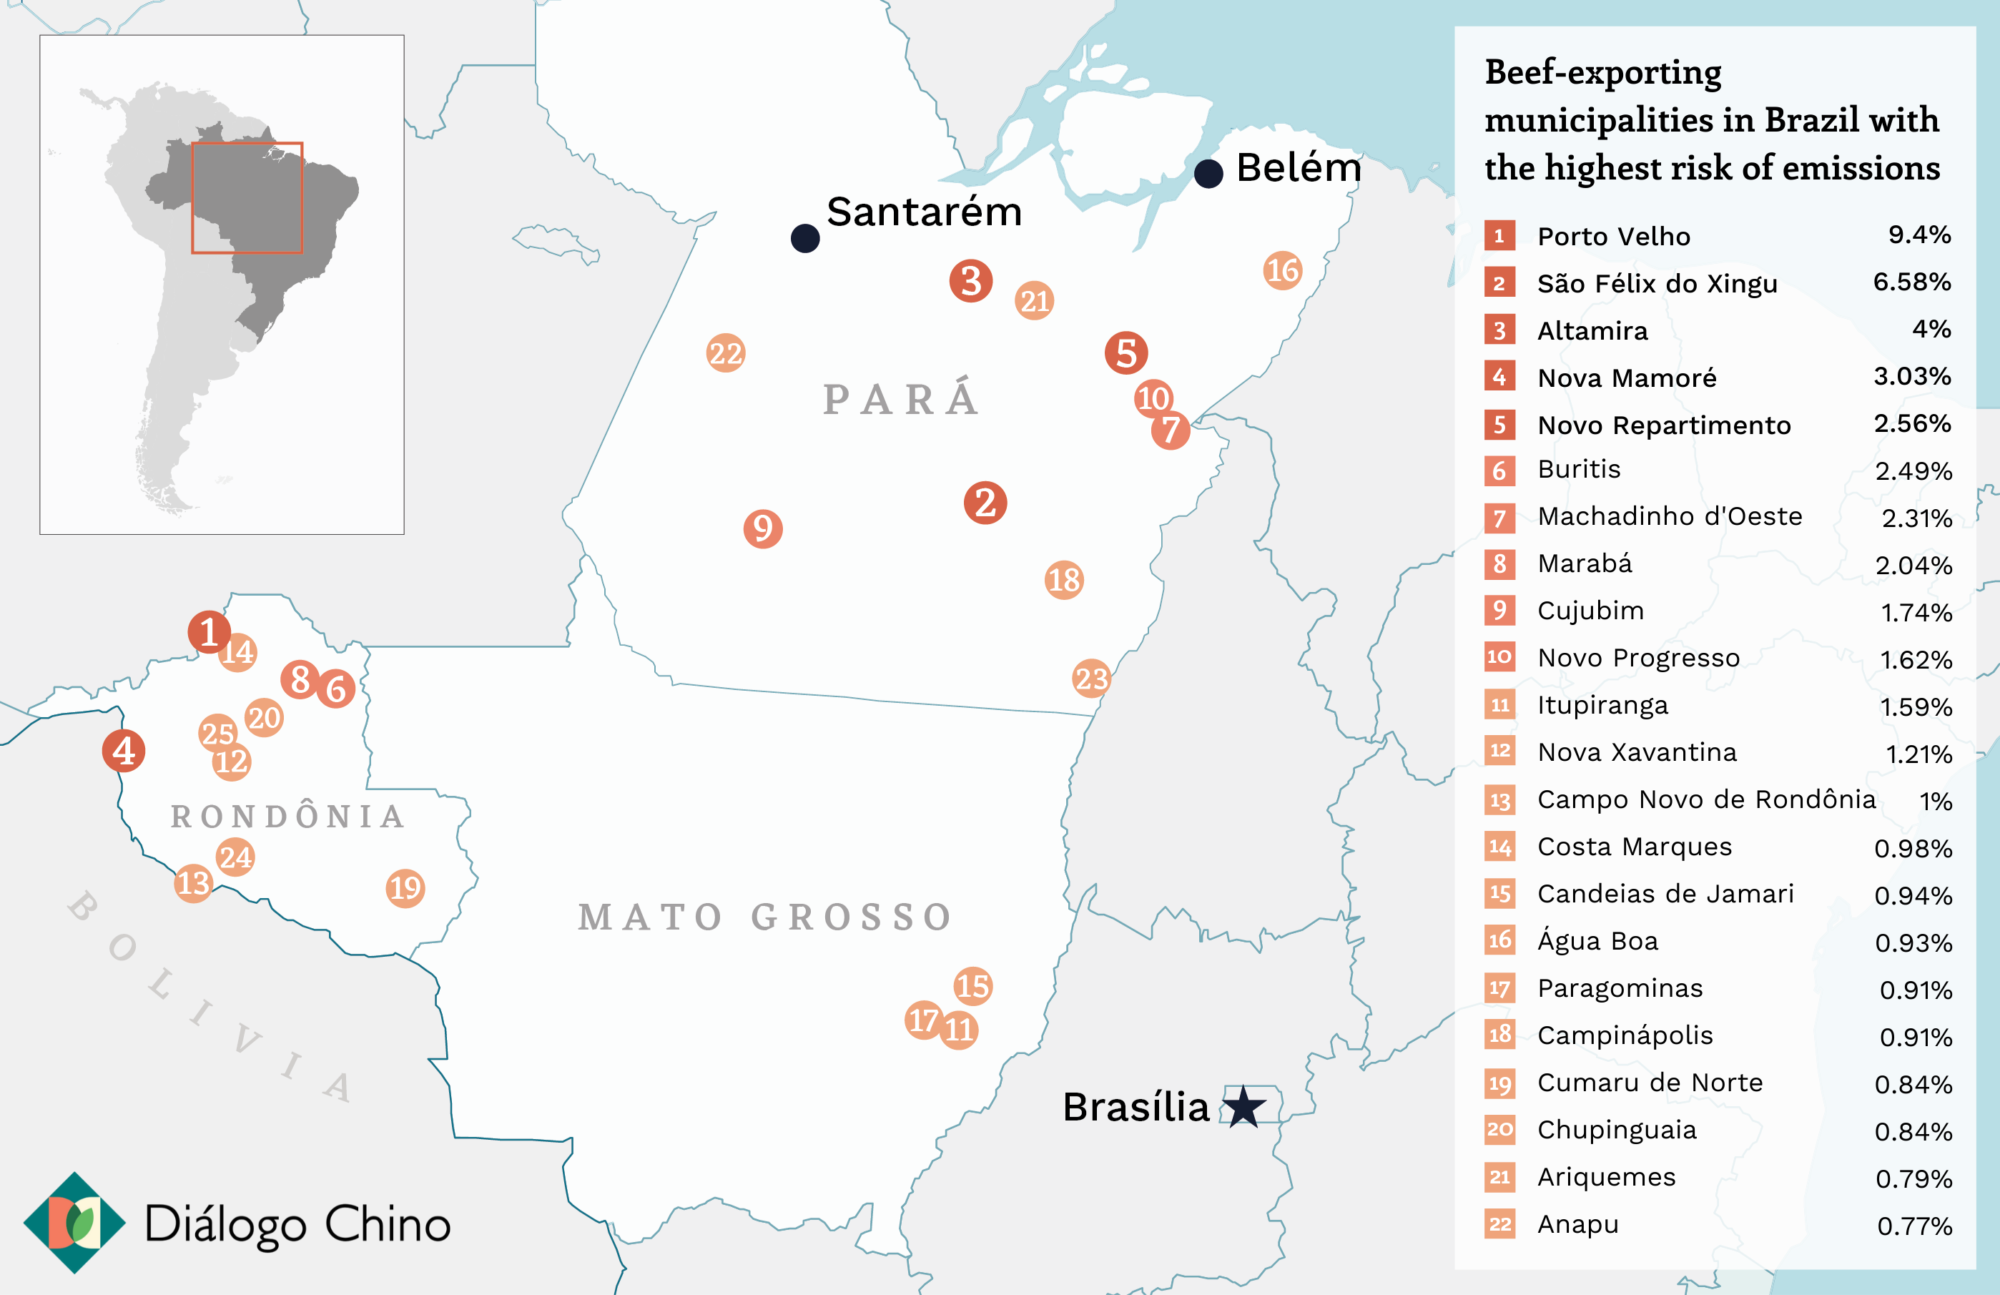 beef exporting cities in brazil with highest emissions risk